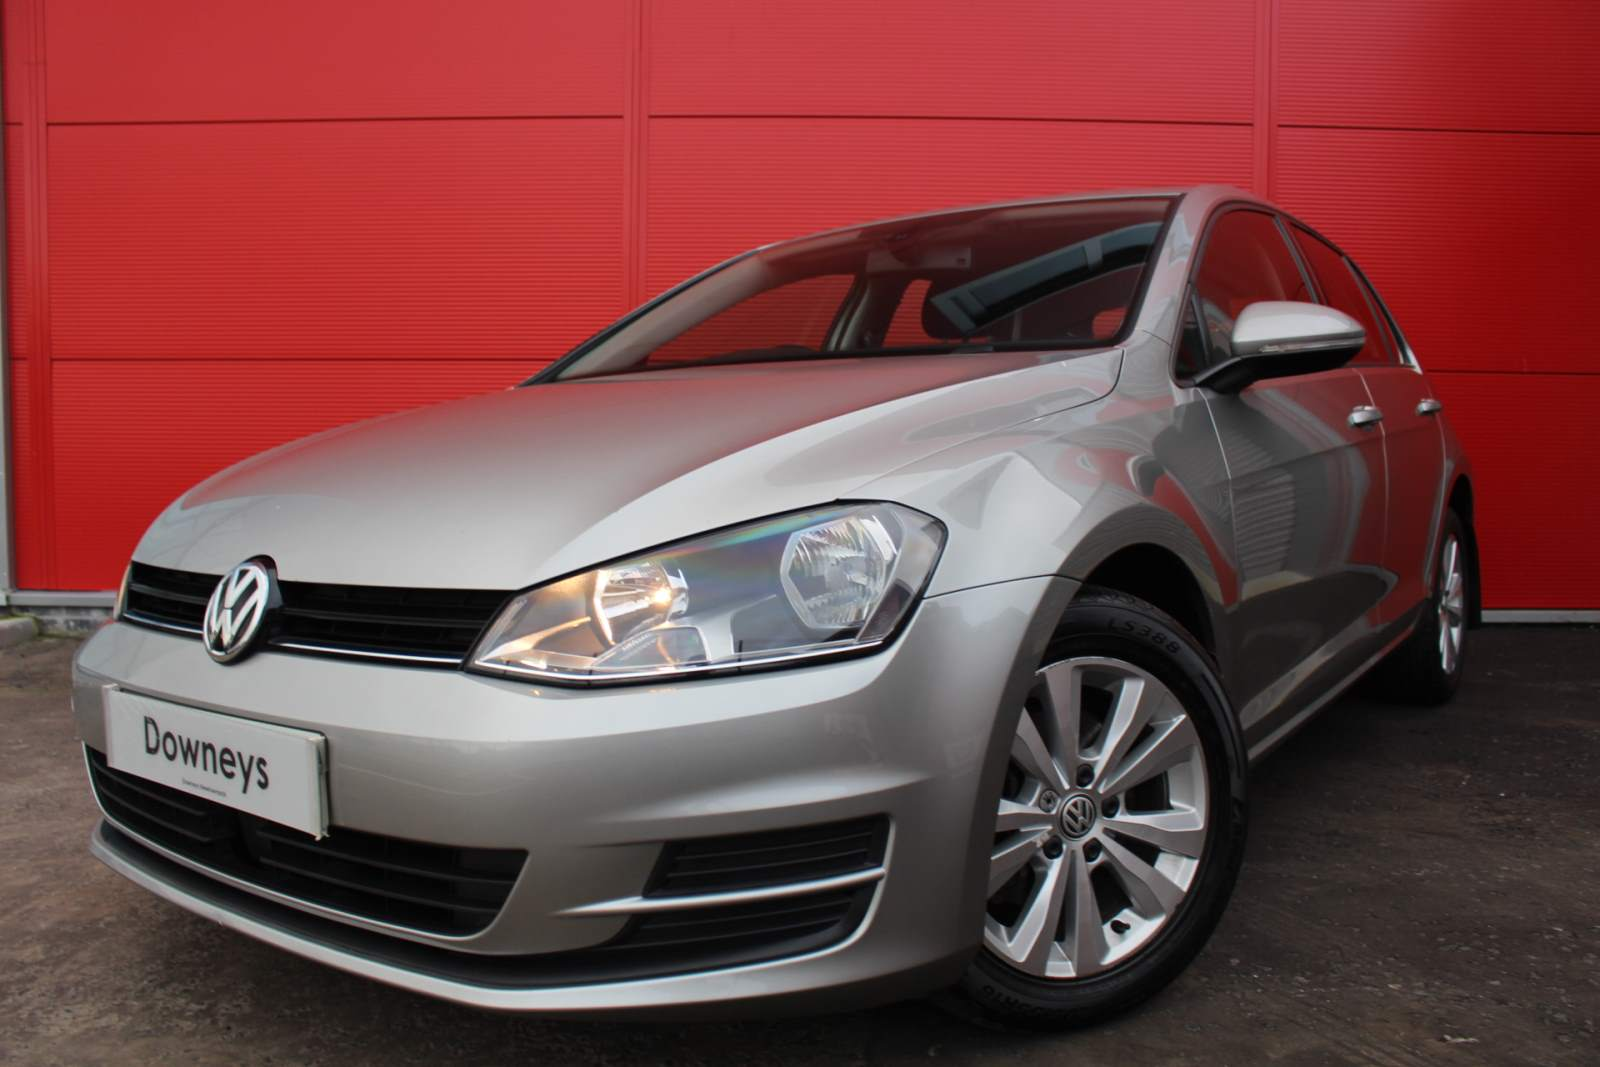 Volkswagen GOLF 1.6TDI  SE DSG BLUEMOTION TECH